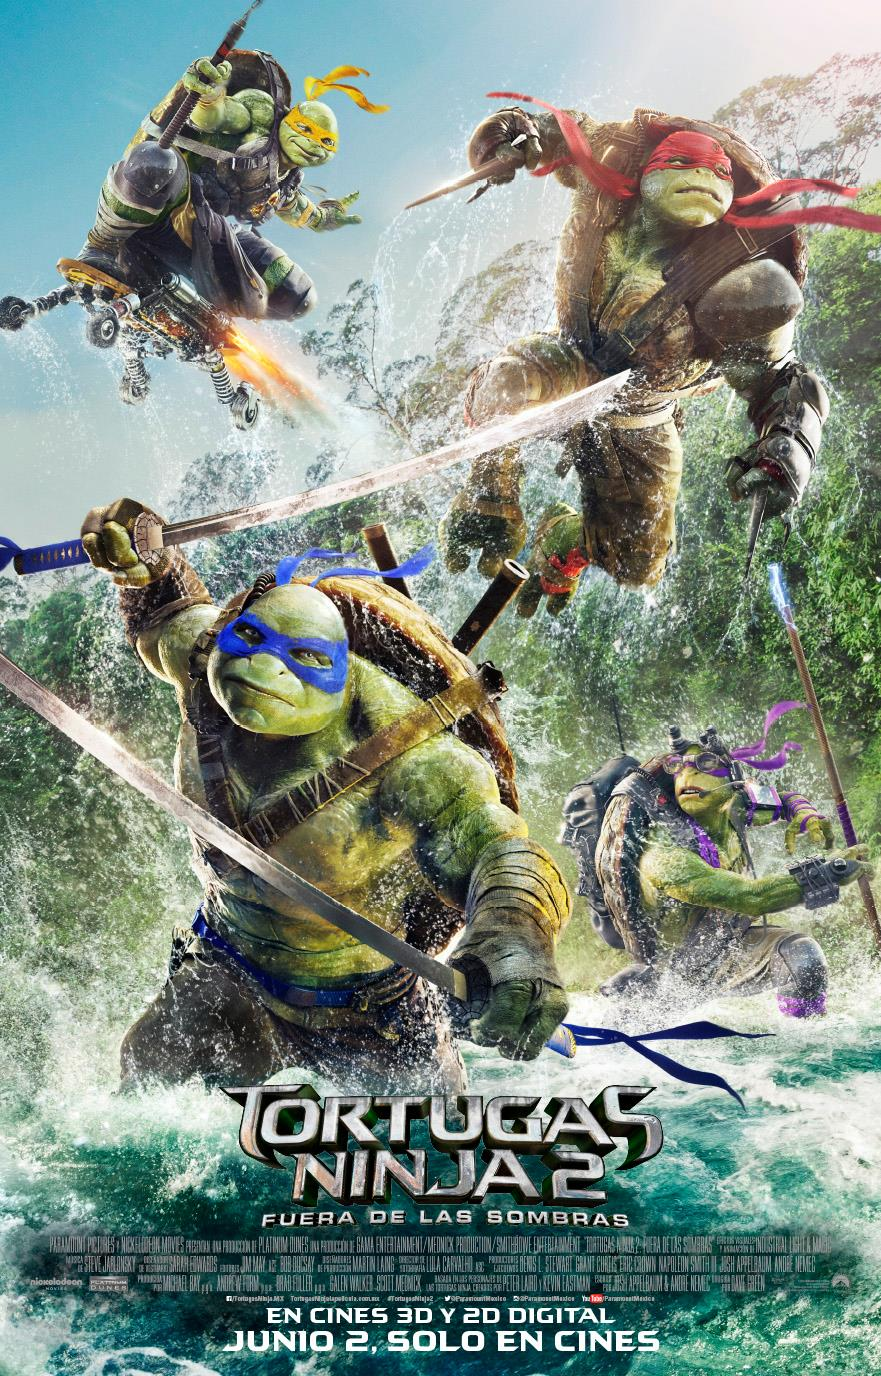 posters tortugas ninja fuera sombras-01